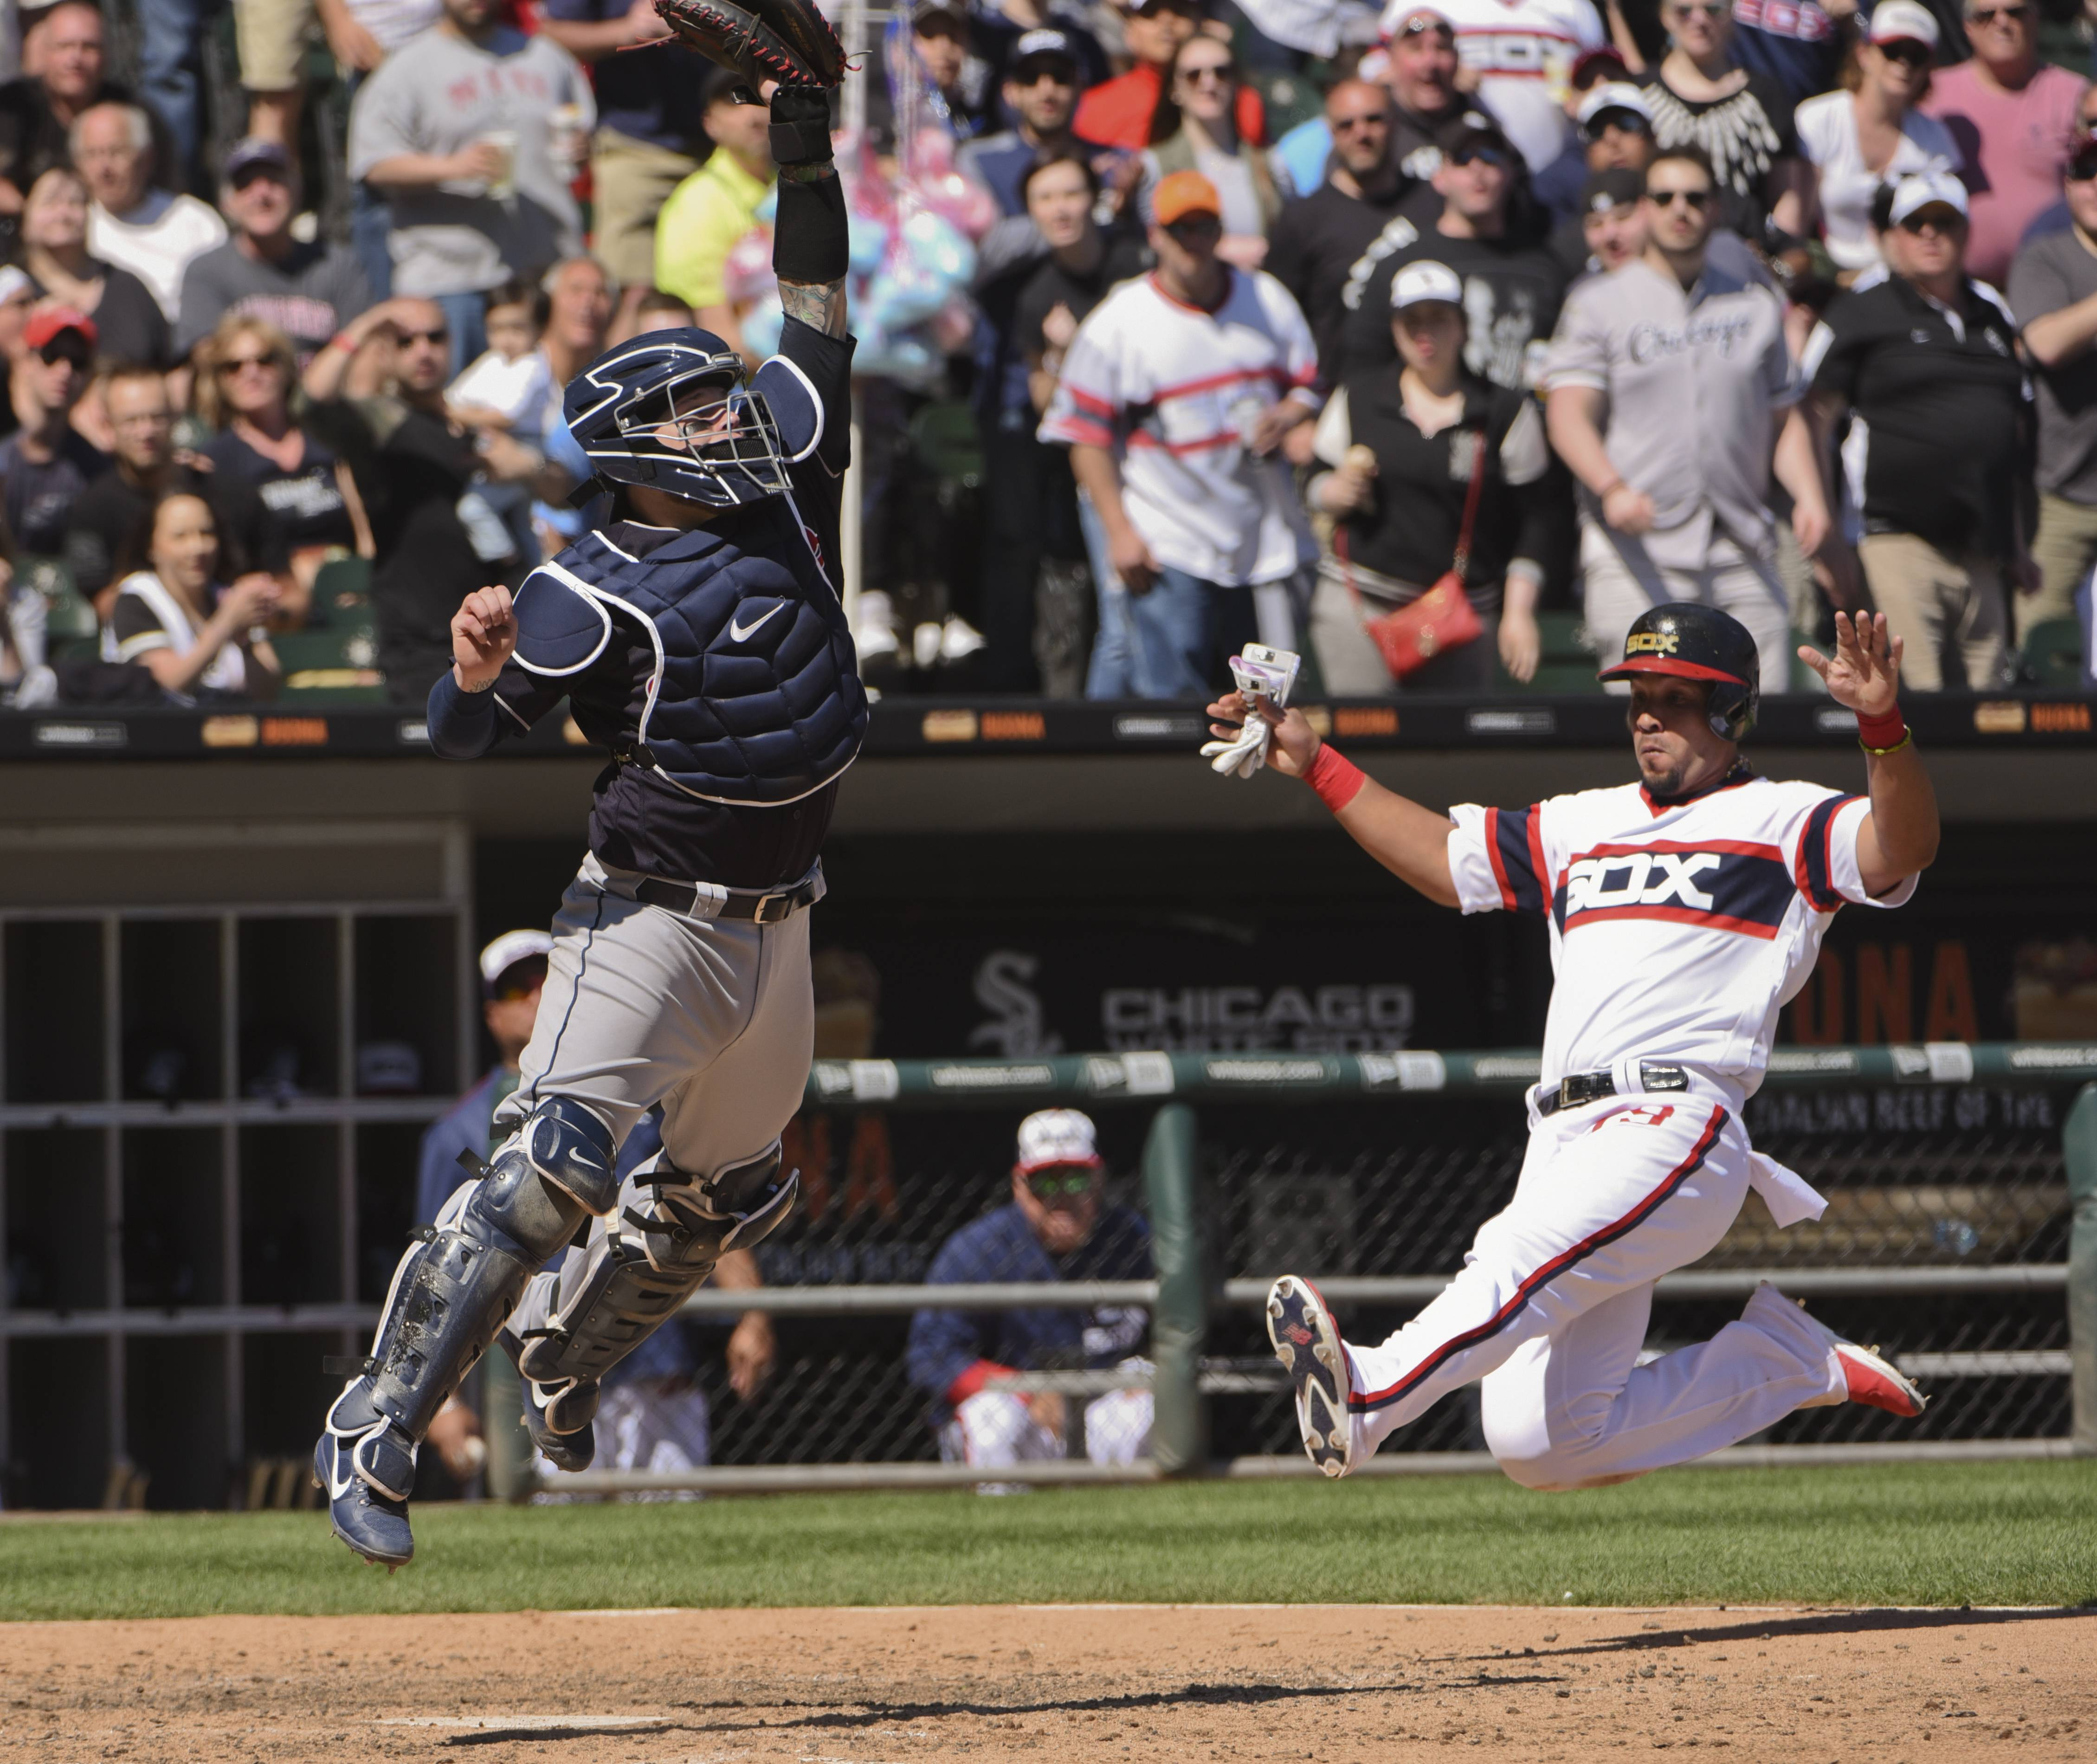 Cleveland Indians catcher Roberto Perez leaps to catch the ball as Chicago White Sox's Jose Abreu scores on an RBI-double hit by Avisail Garcia during the fifth inning of the game in Chicago Sunday.